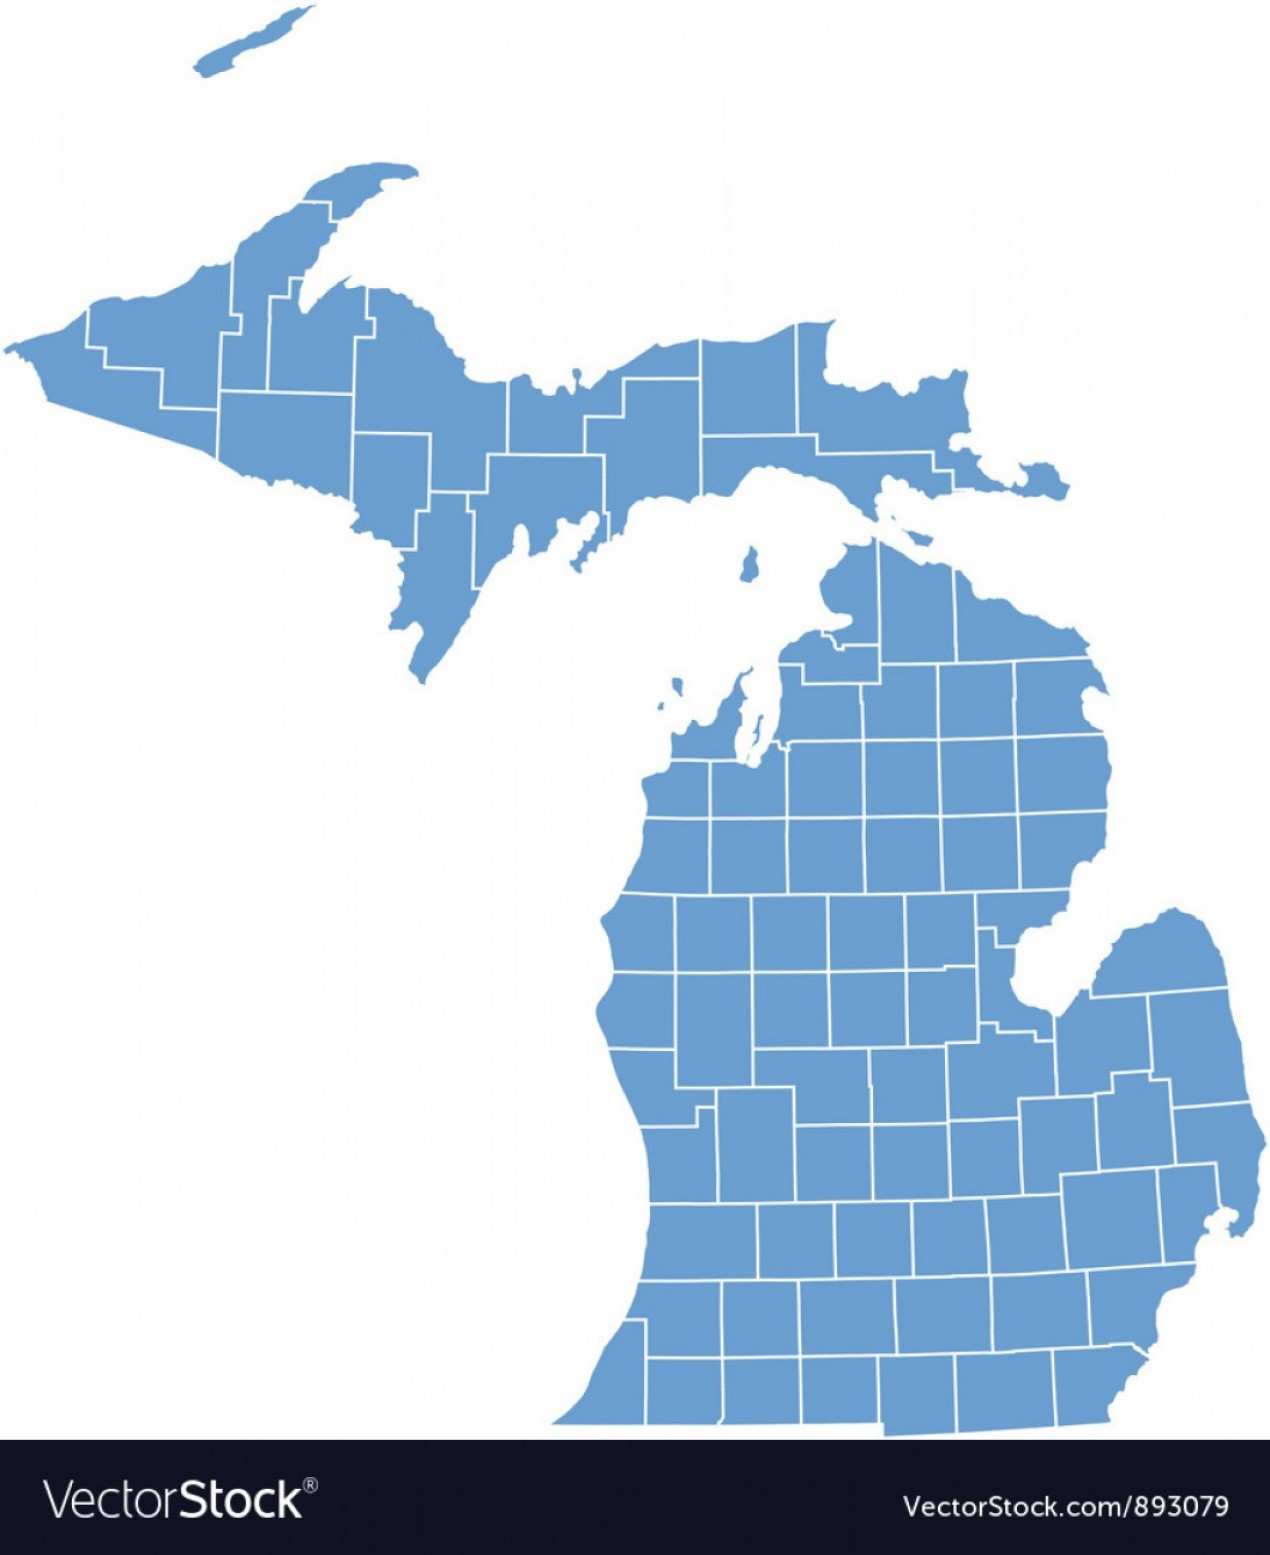 WI County Map Vector: State Map Of Michigan By Counties Vector